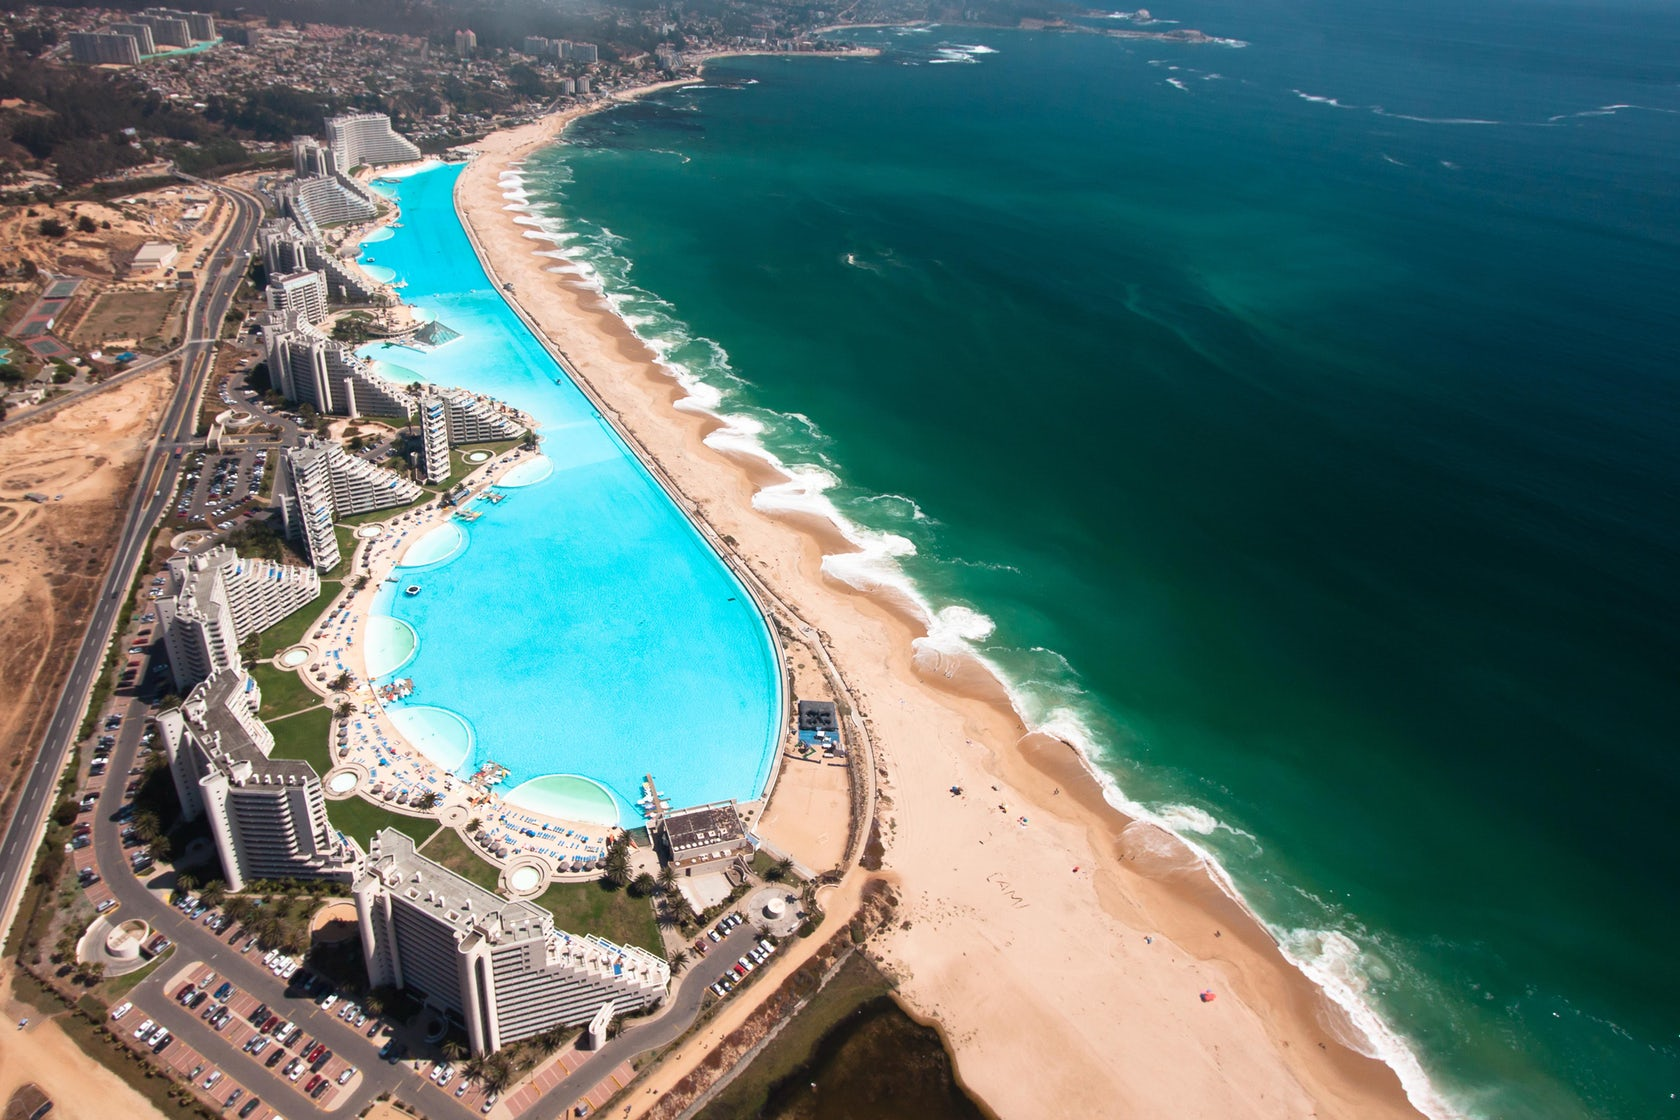 Worlds Largest Outdoor Pool At Chiles San Alfonso Del Mar Resort >> The San Alfonso Del Mar Beach Resort In Chile Is Home To The Largest